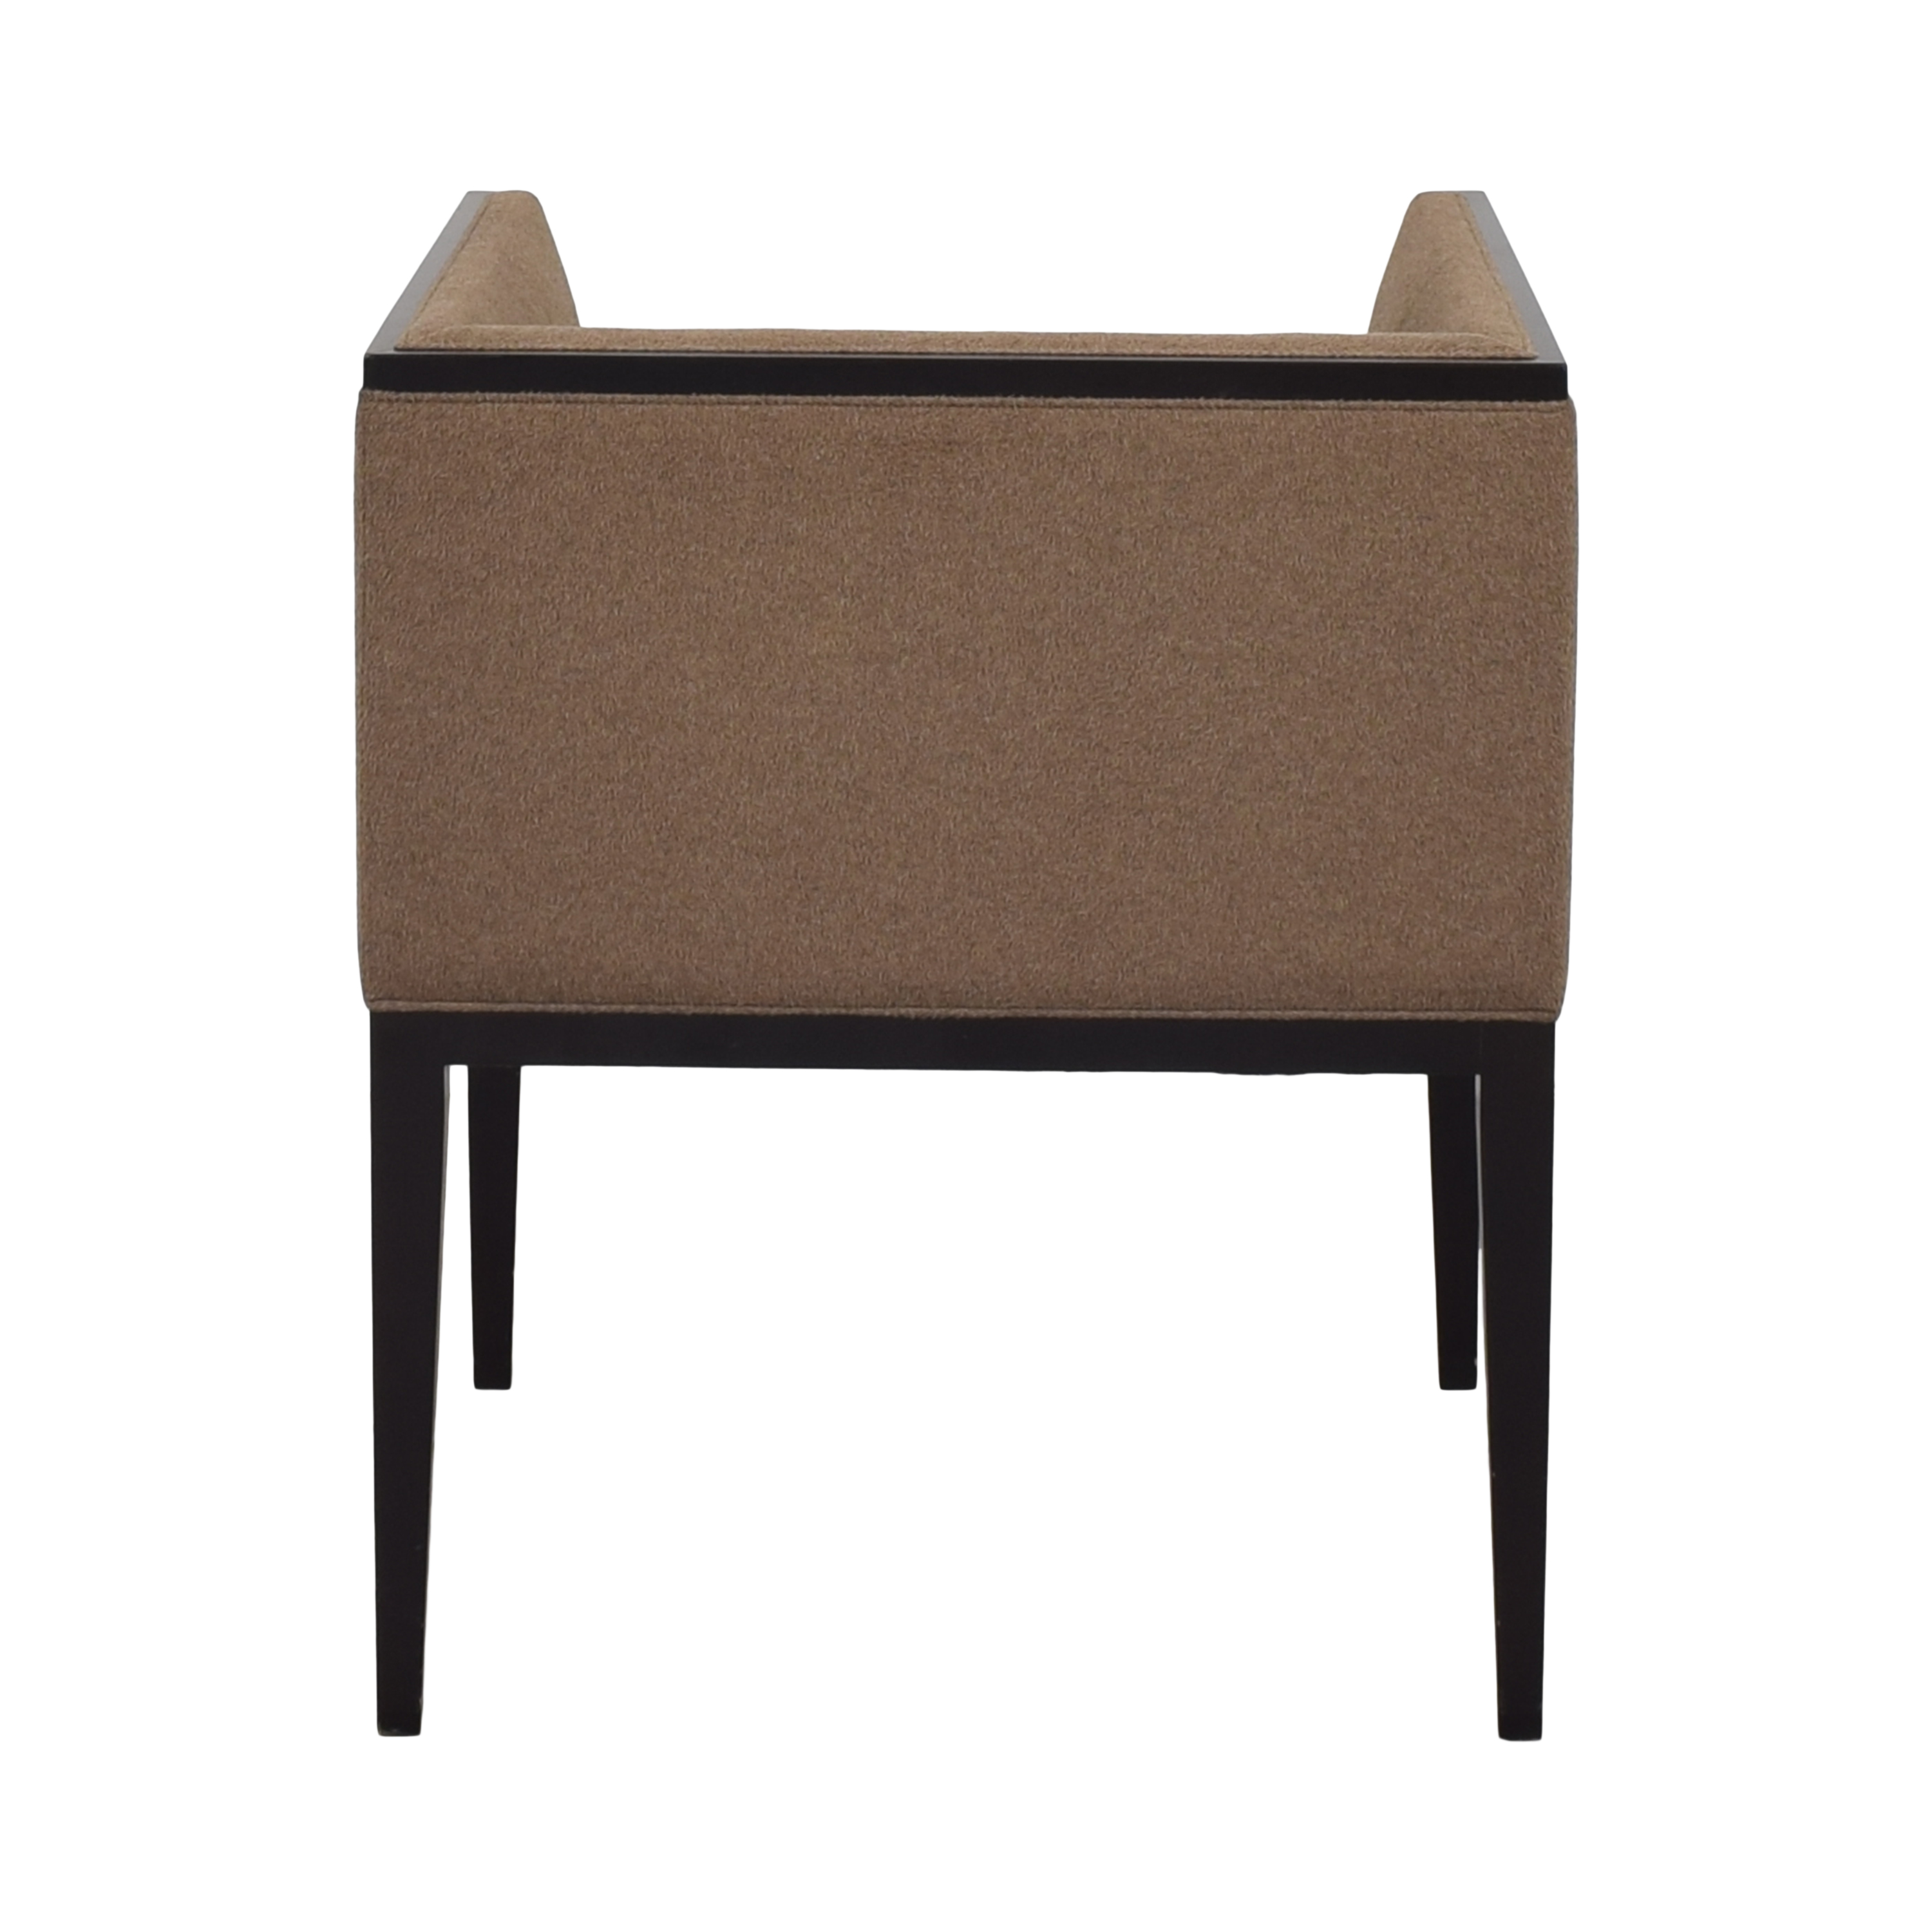 Hudson Furniture & Bedding Hudson Furniture & Bedding Contemporary Dining Chair nyc